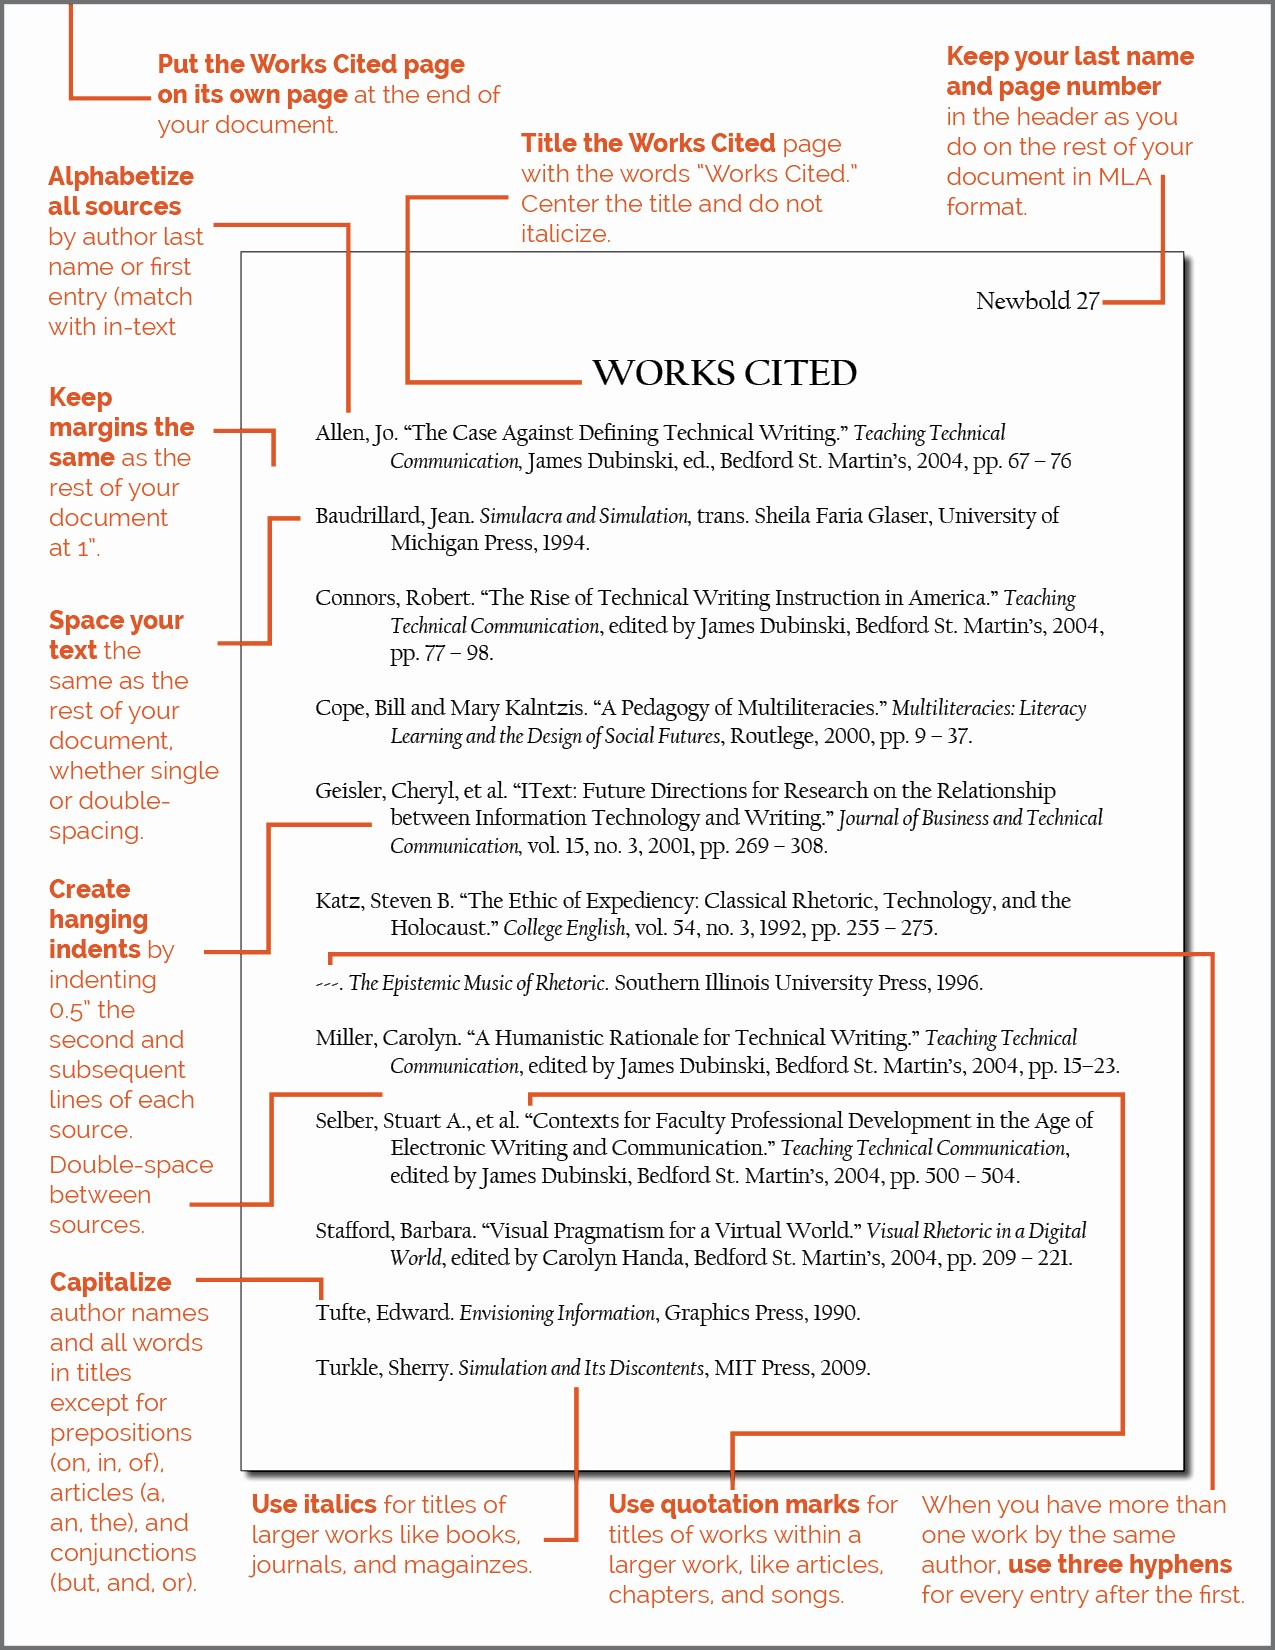 Mla Works Cited Page Template Unique Mla format Works Cited Page – the Visual Munication